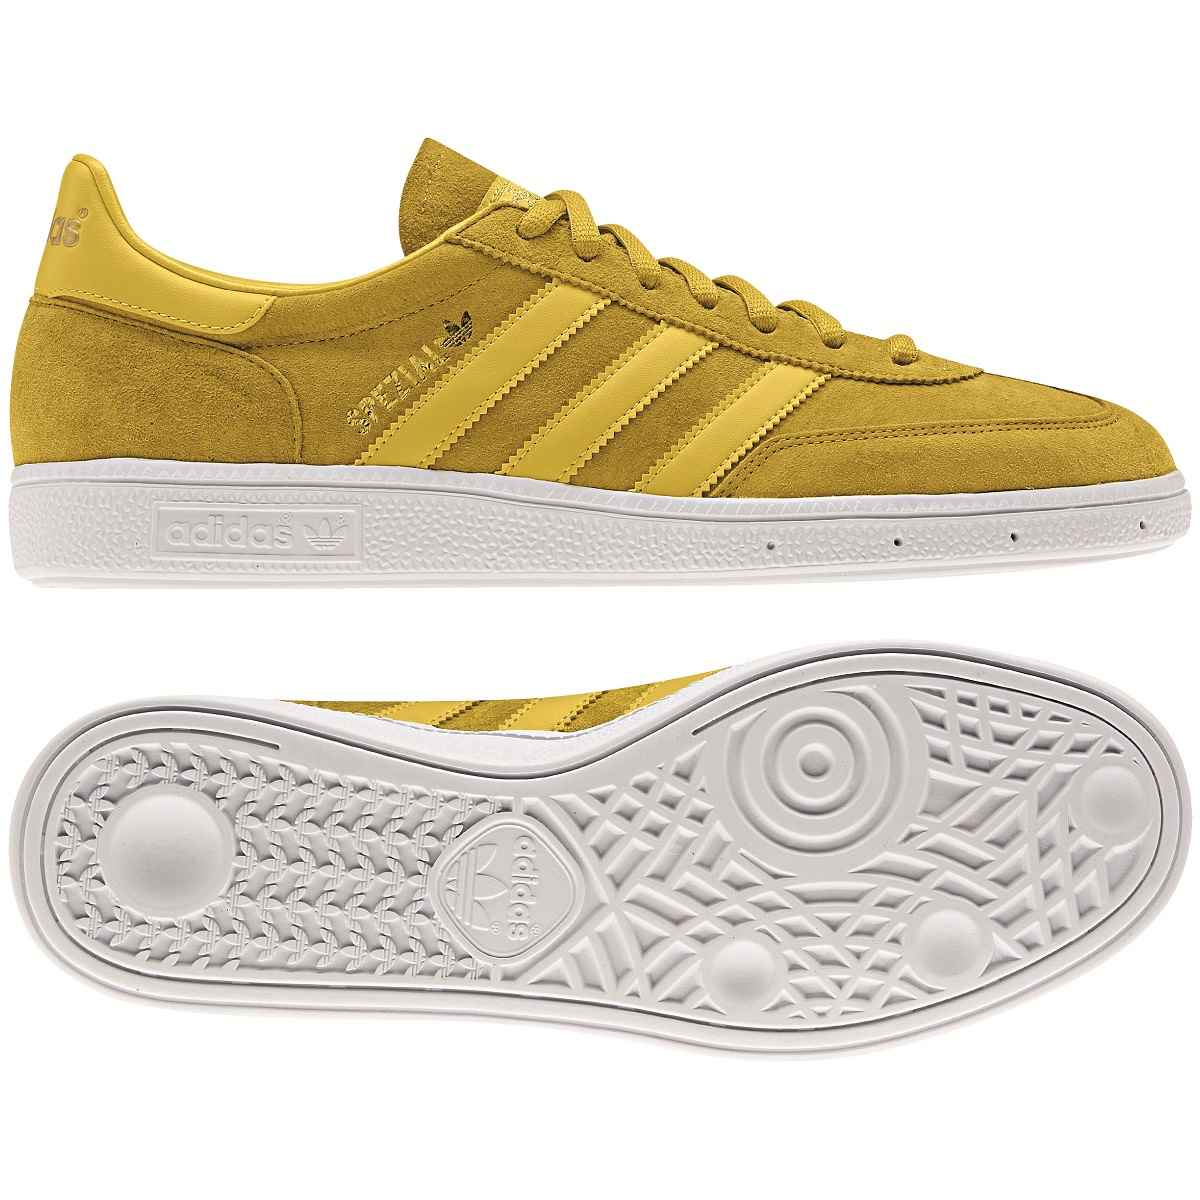 details about adidas originals spezial schuhe sneaker turnschuhe damen. Black Bedroom Furniture Sets. Home Design Ideas